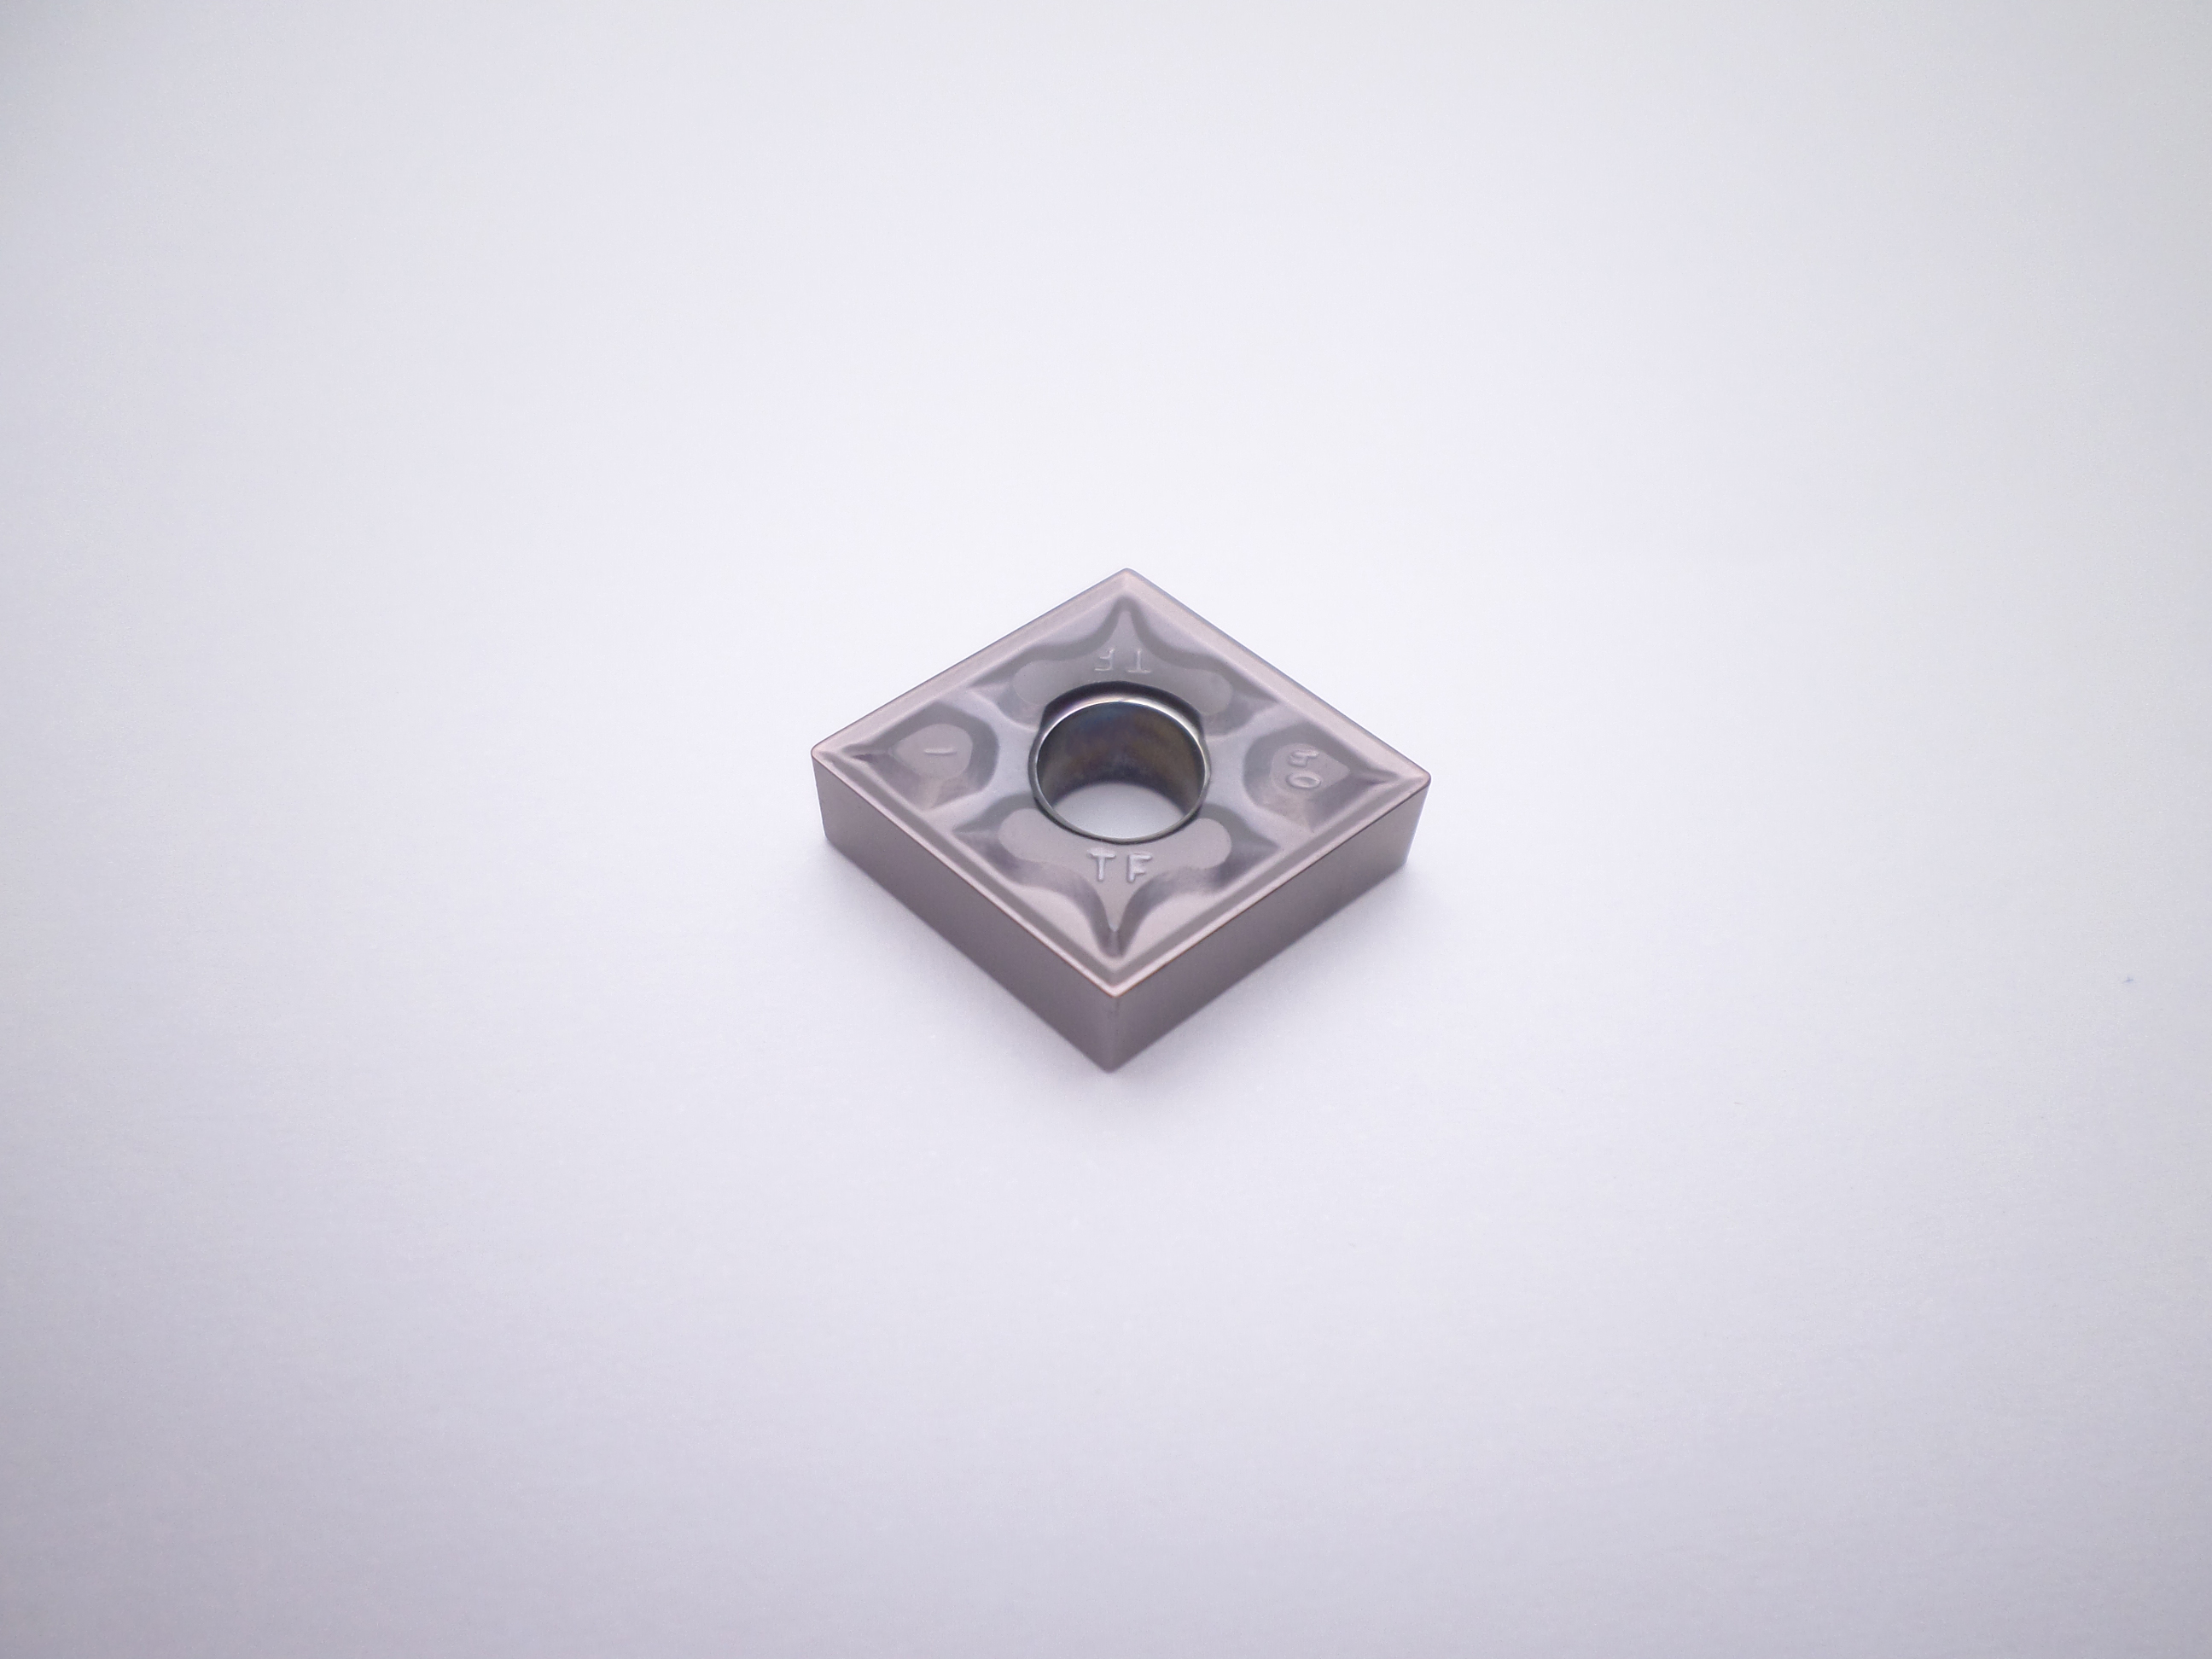 CNMG120408 TF for ISCAR CNMG120408 TF IC907 Substitutes Replacements.